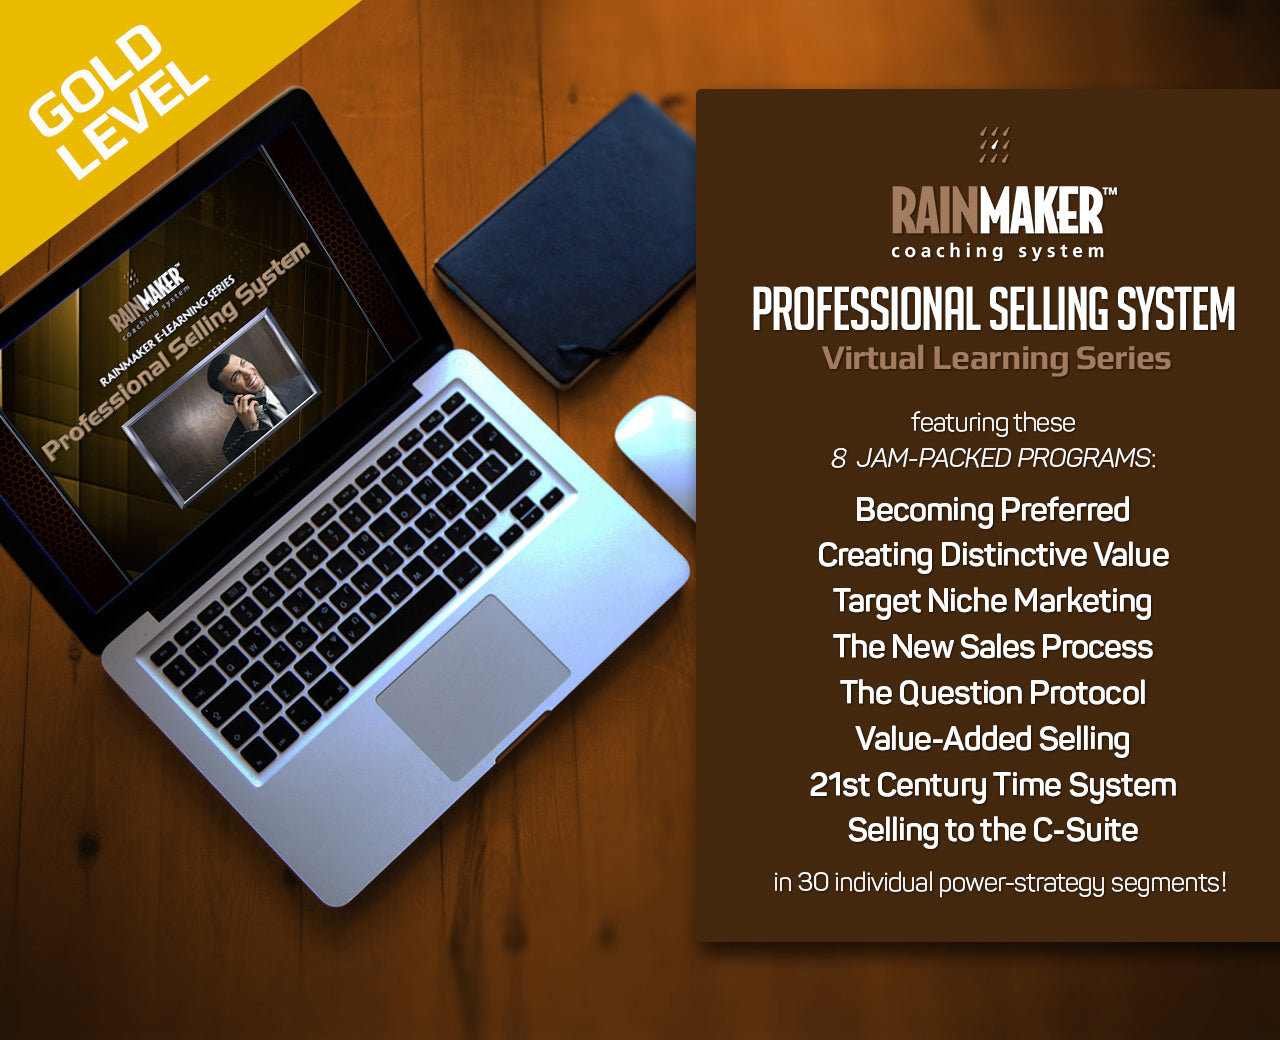 Rainmaker Professional Selling System - 1 Year Subscription (Billed Monthly)